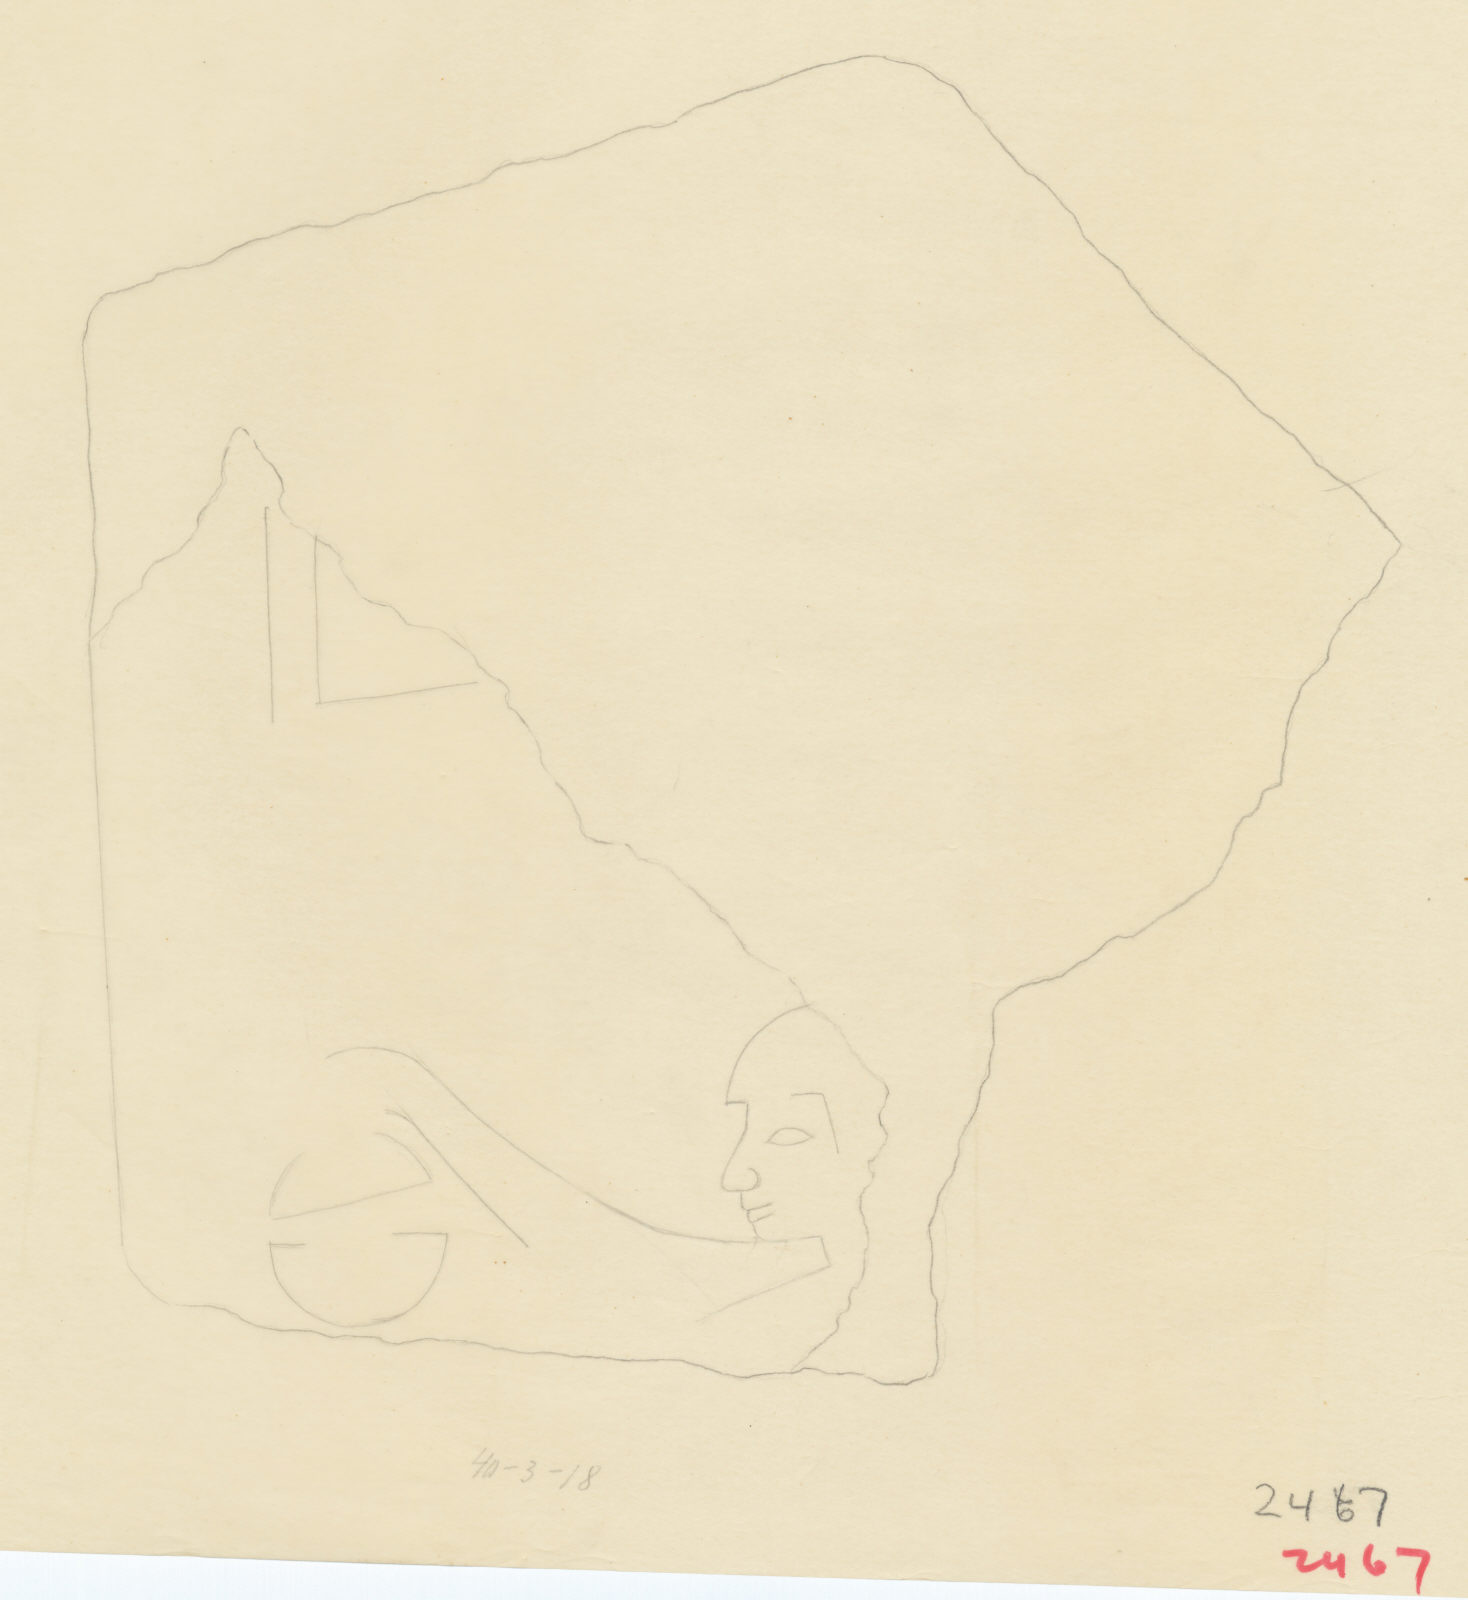 Drawings: G 2467 (E of): relief fragment from debris